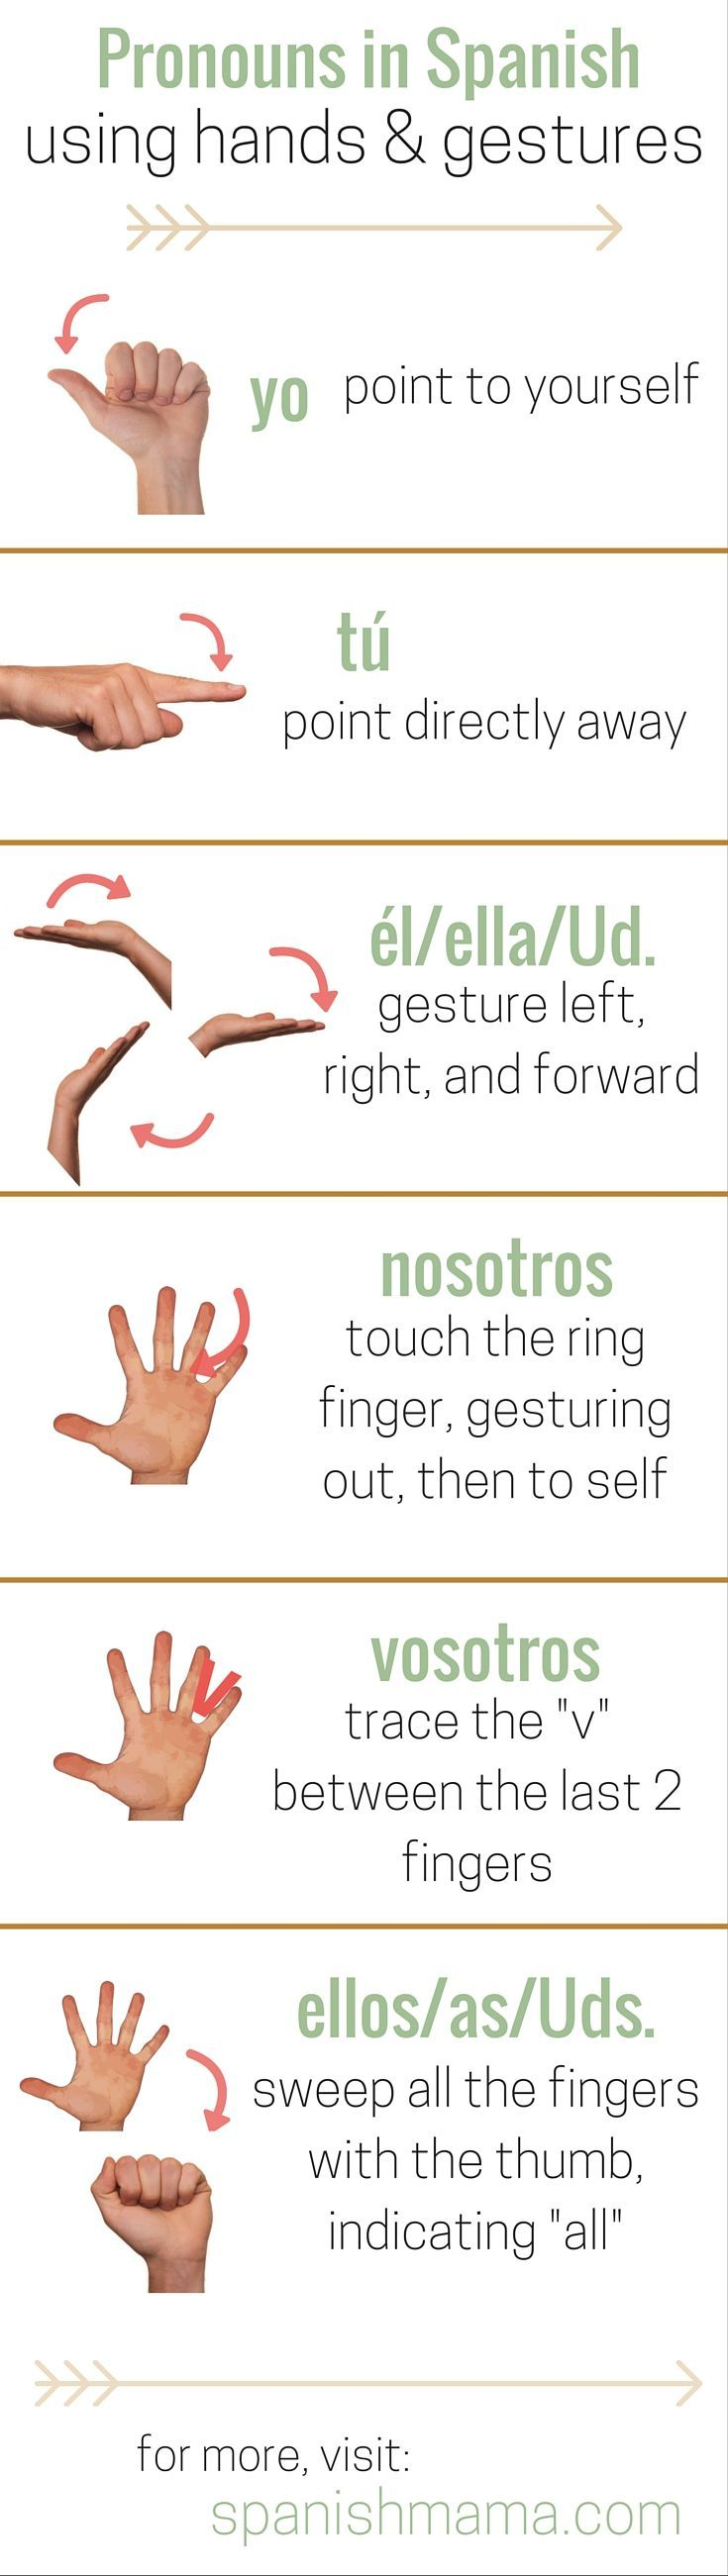 Worksheet Is Each A Pronoun 78 best images about spanish pronouns on pinterest tes concrete hands way to teach and practice the in assign a pronoun each finger use gesture with